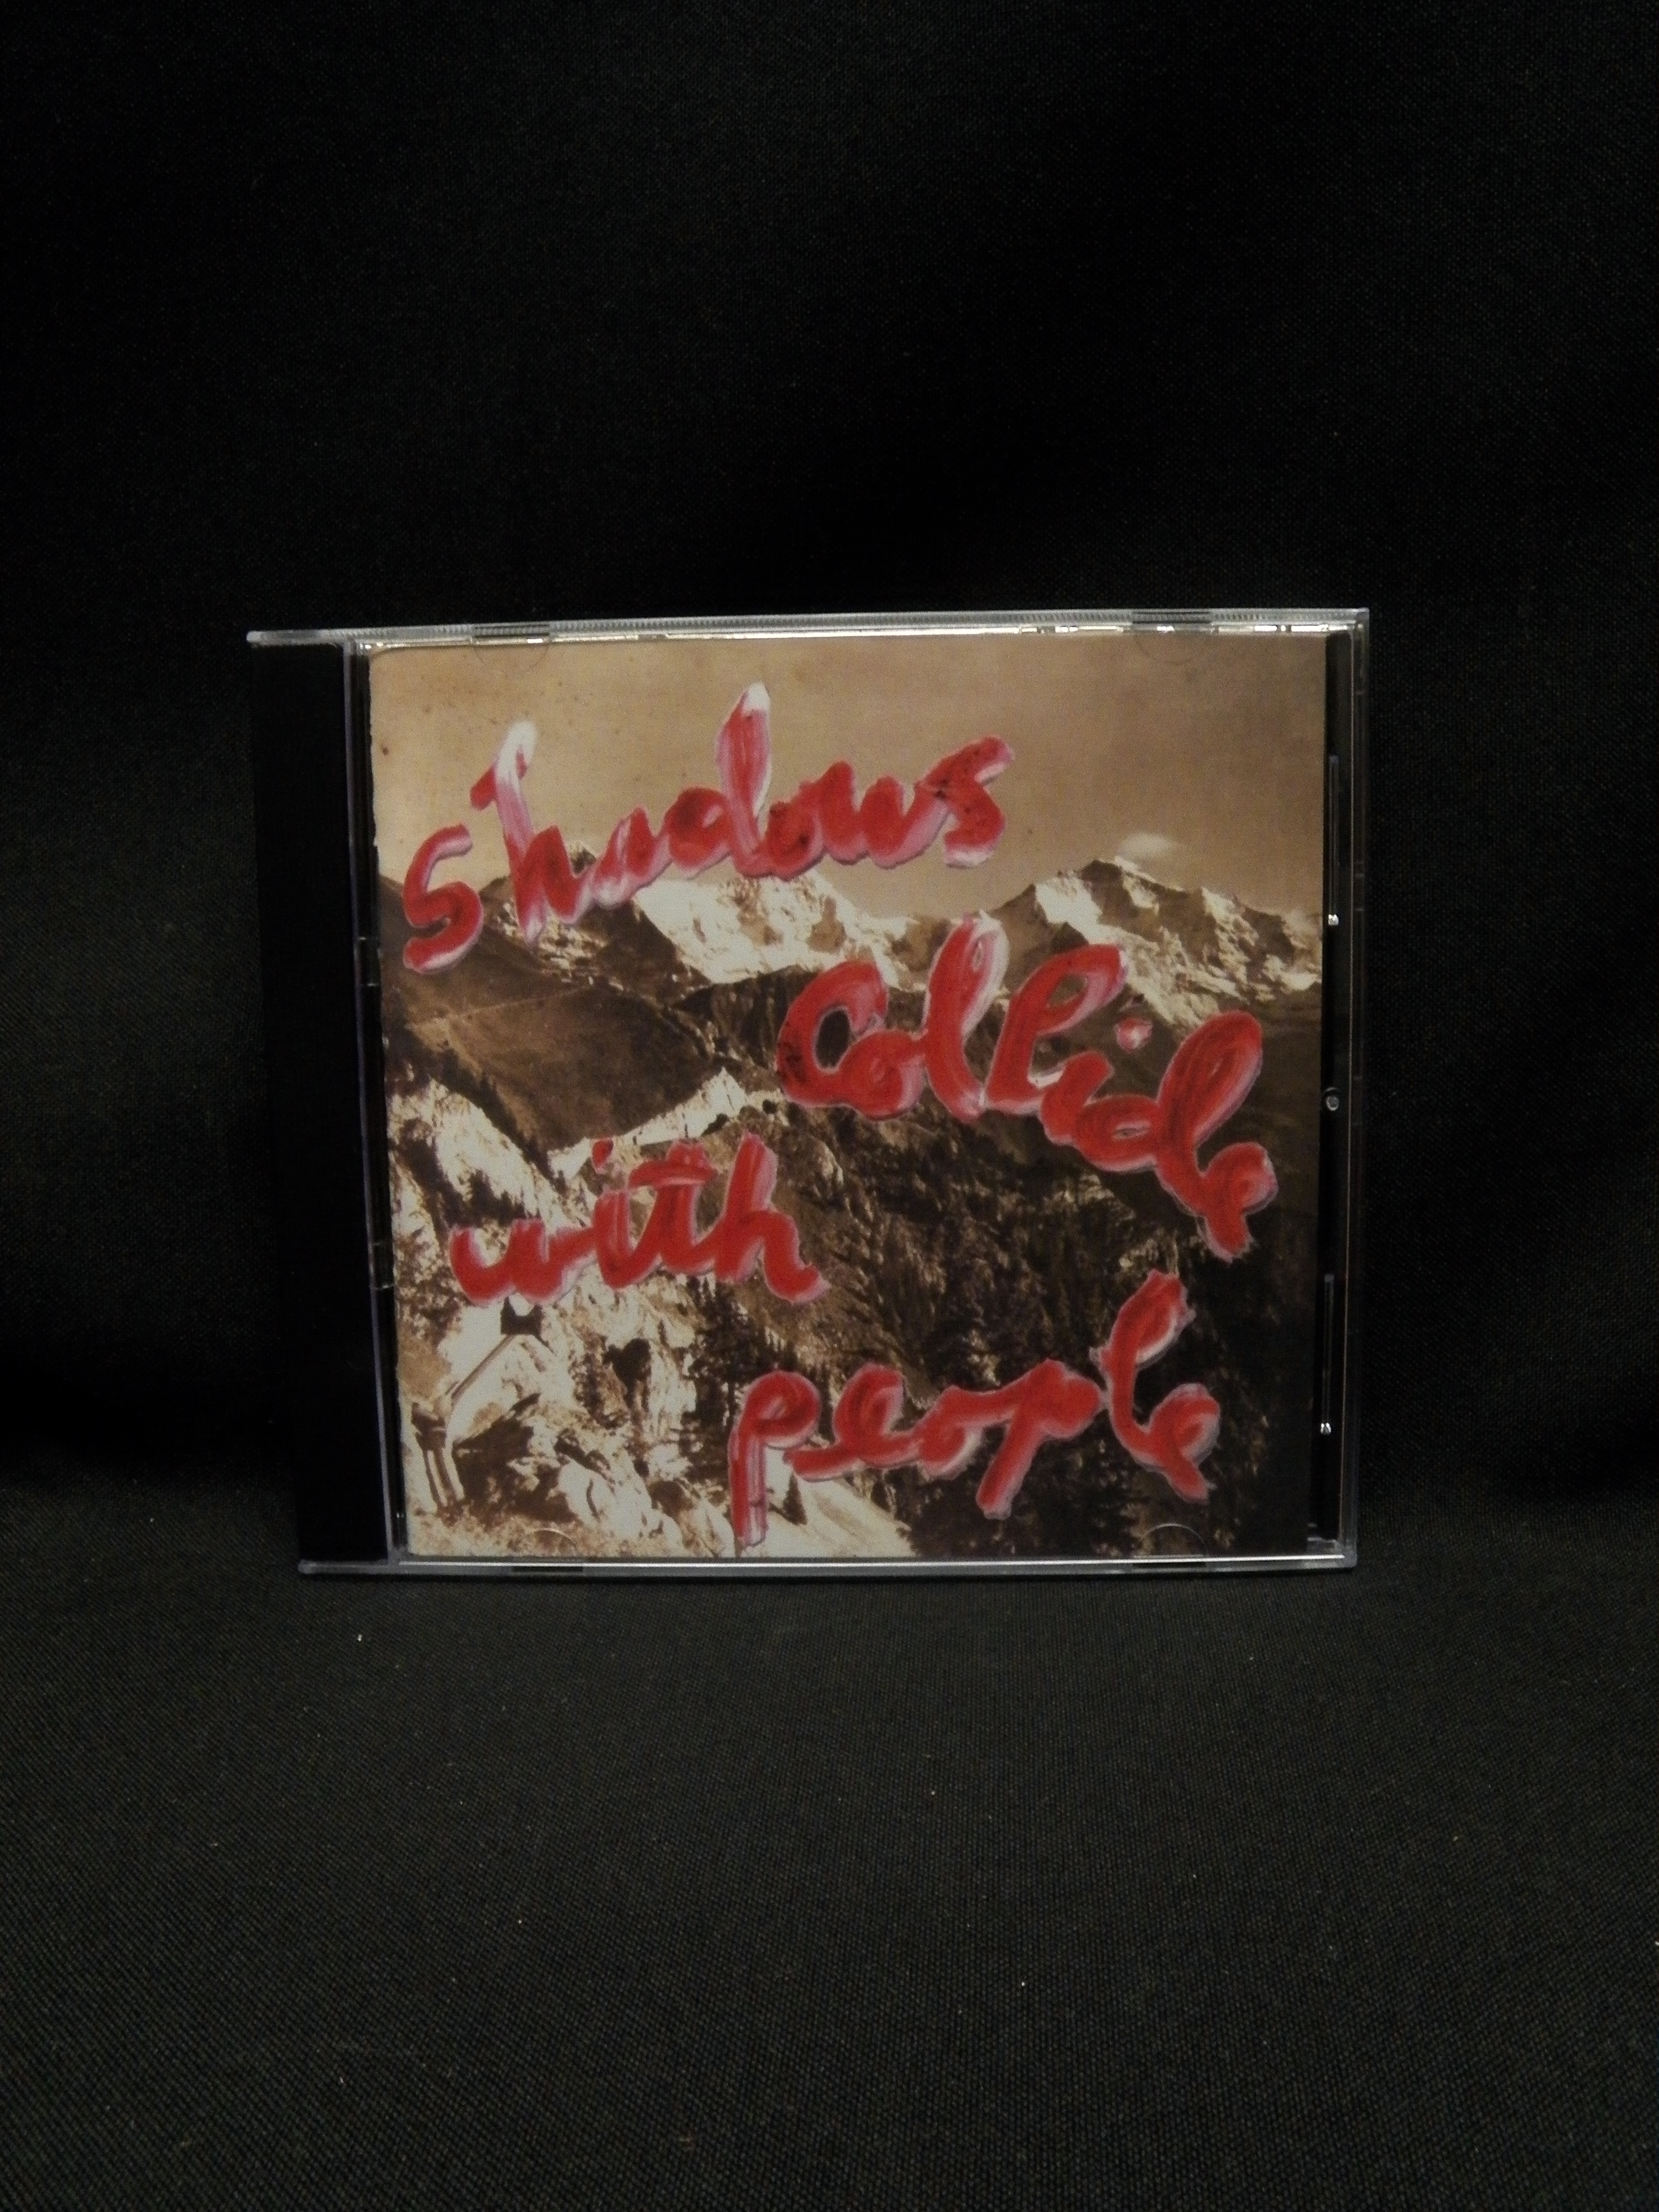 Used Cd John Frusciante Shadows Collide With People 2004